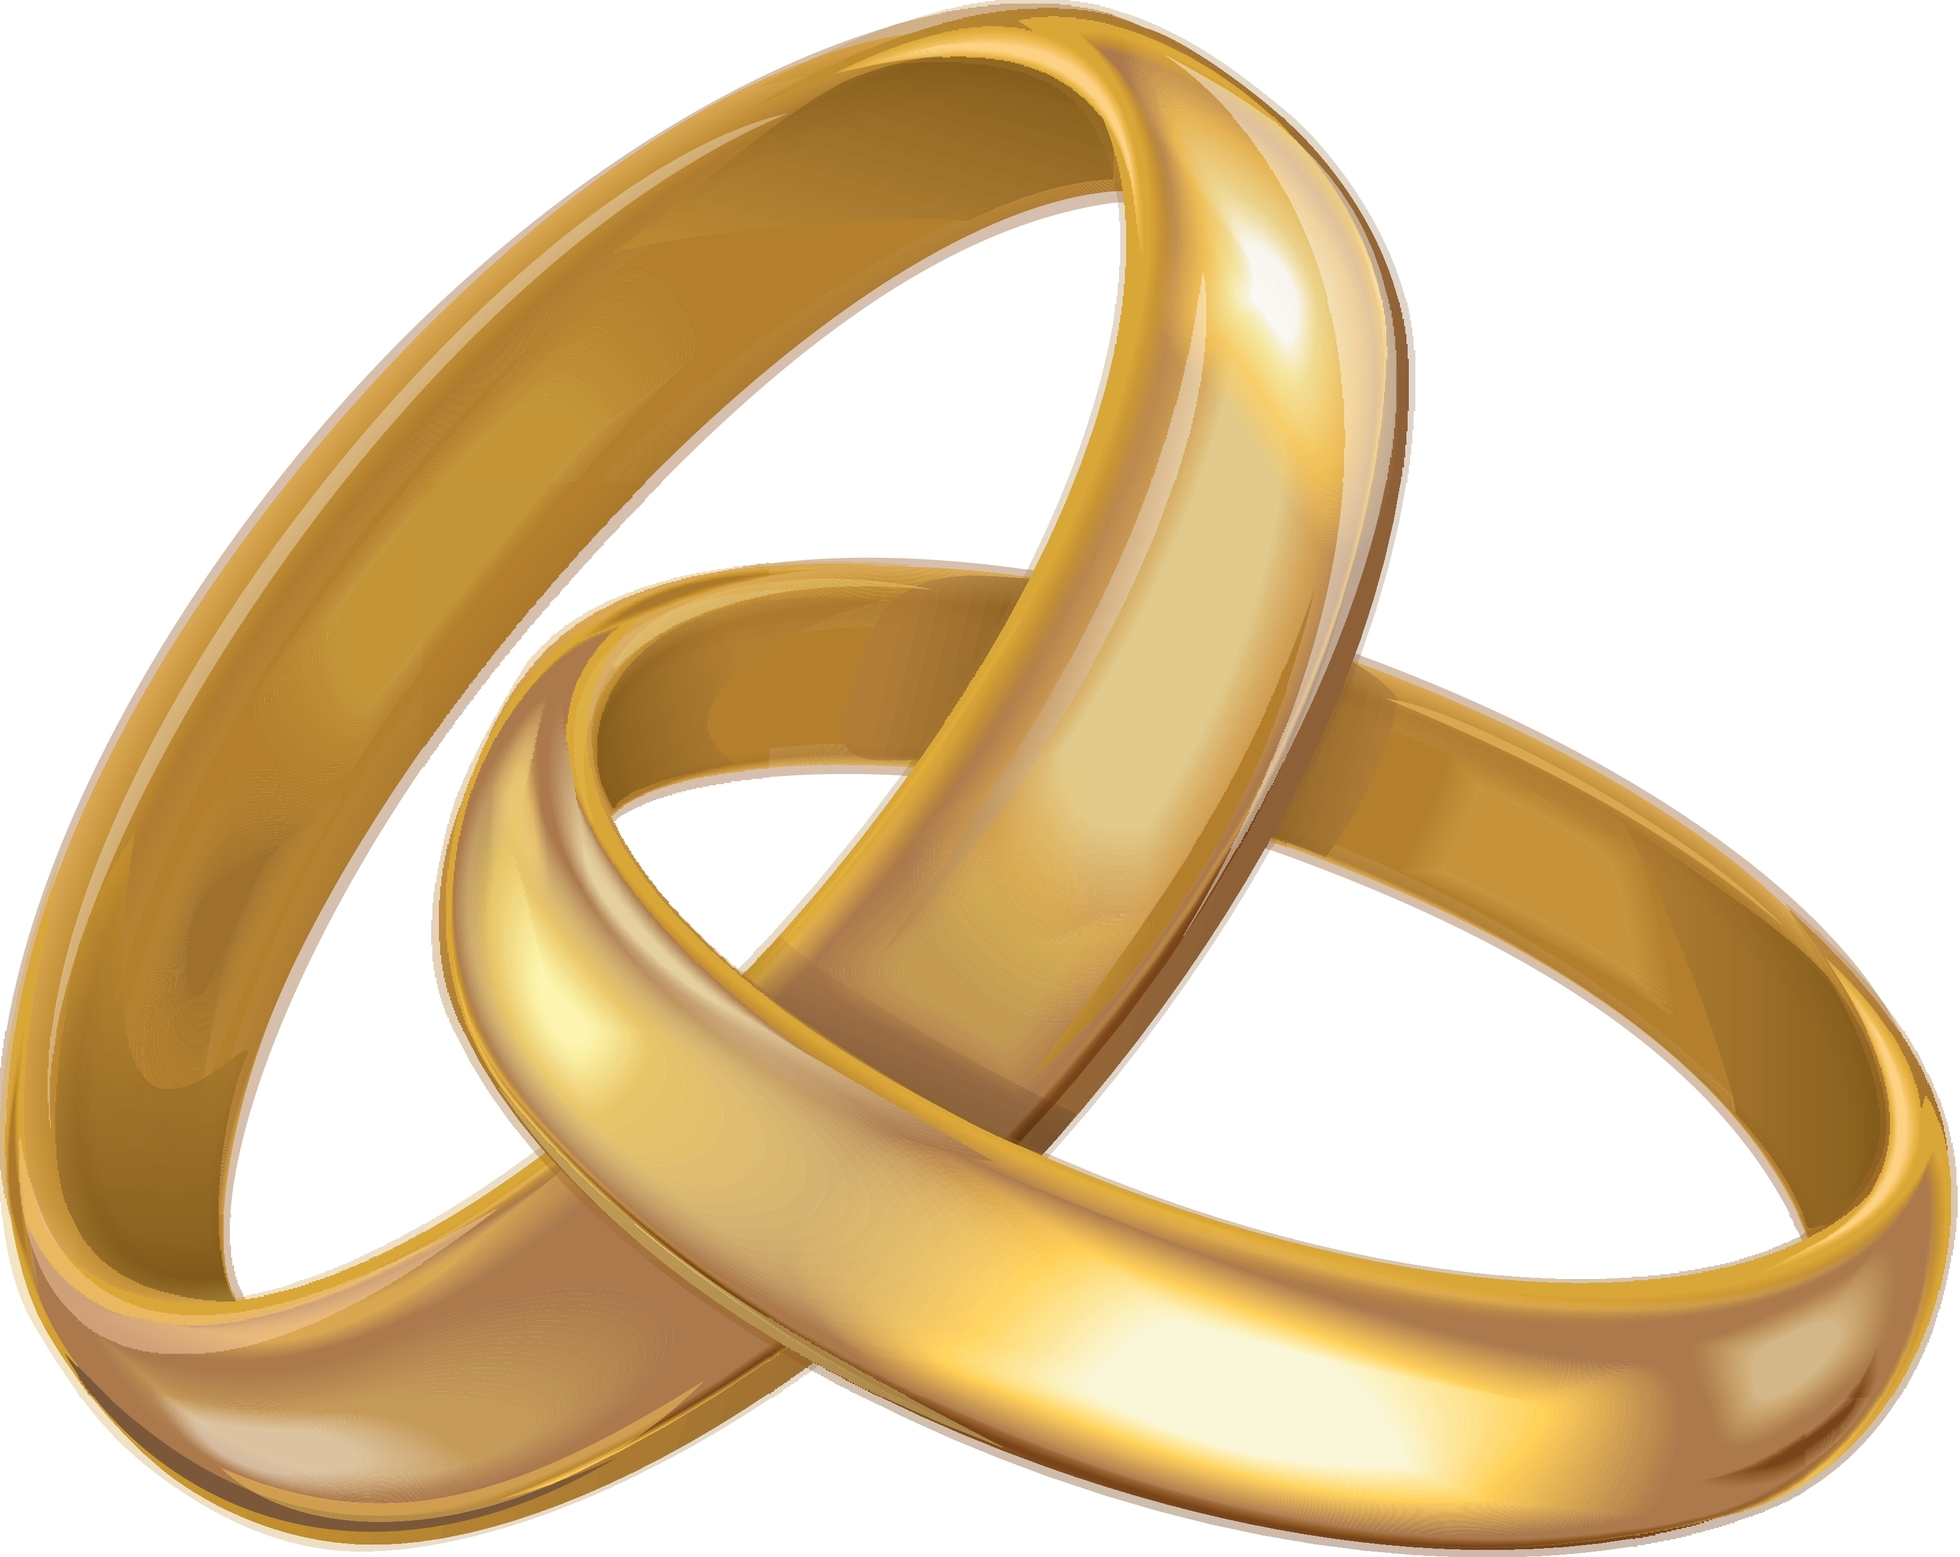 wedding ring clipart | Wedding-Rings-Clipart[1]